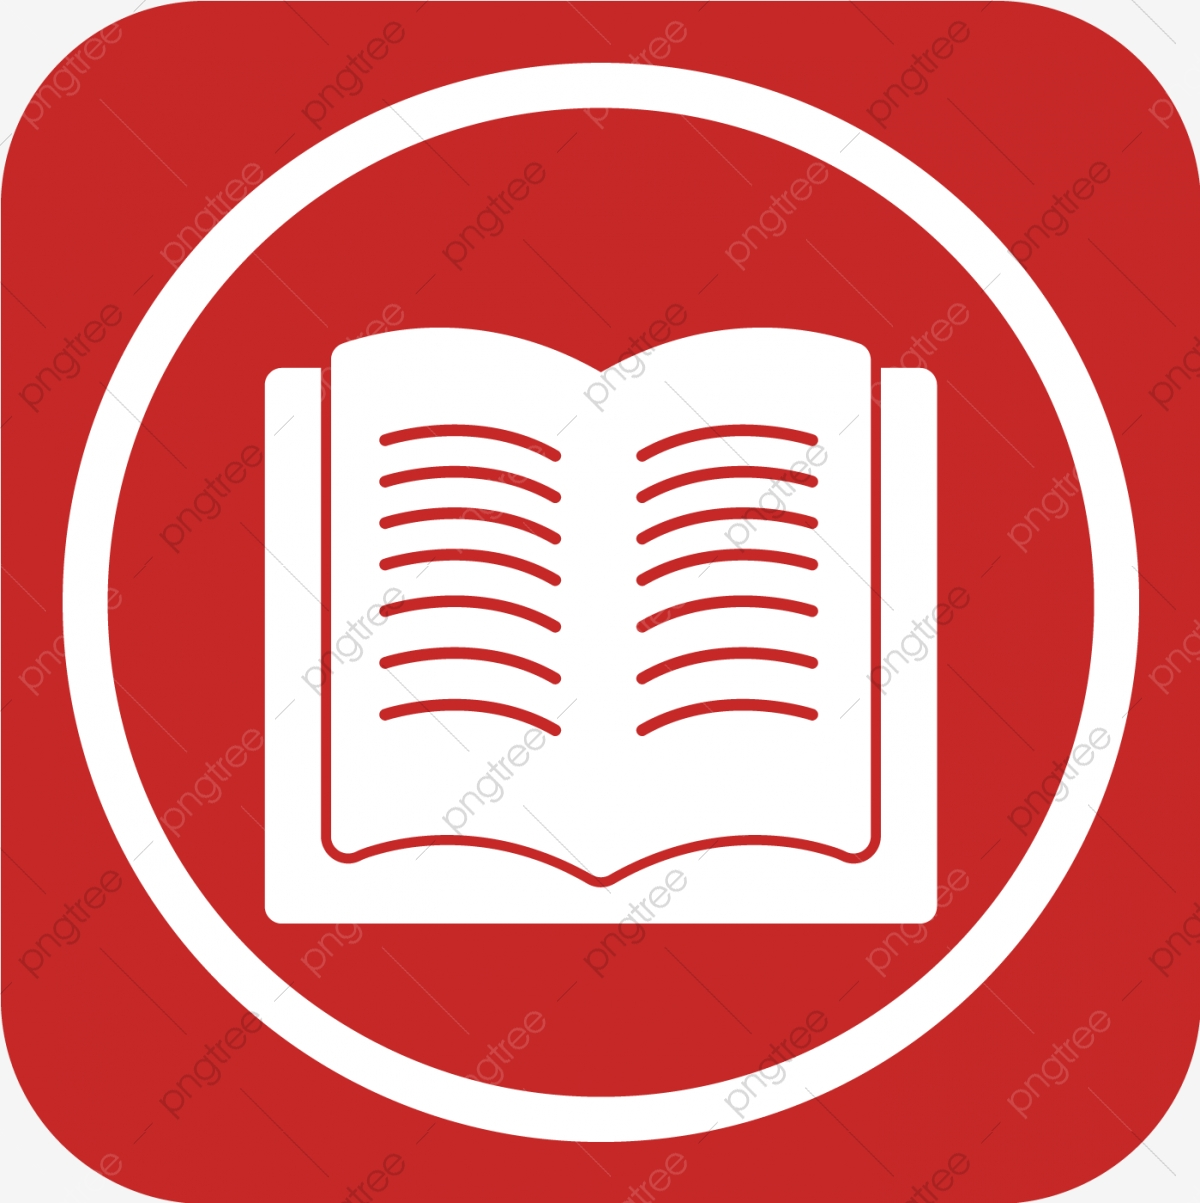 books icon png vector book icon, book, book icon, books png and vector with